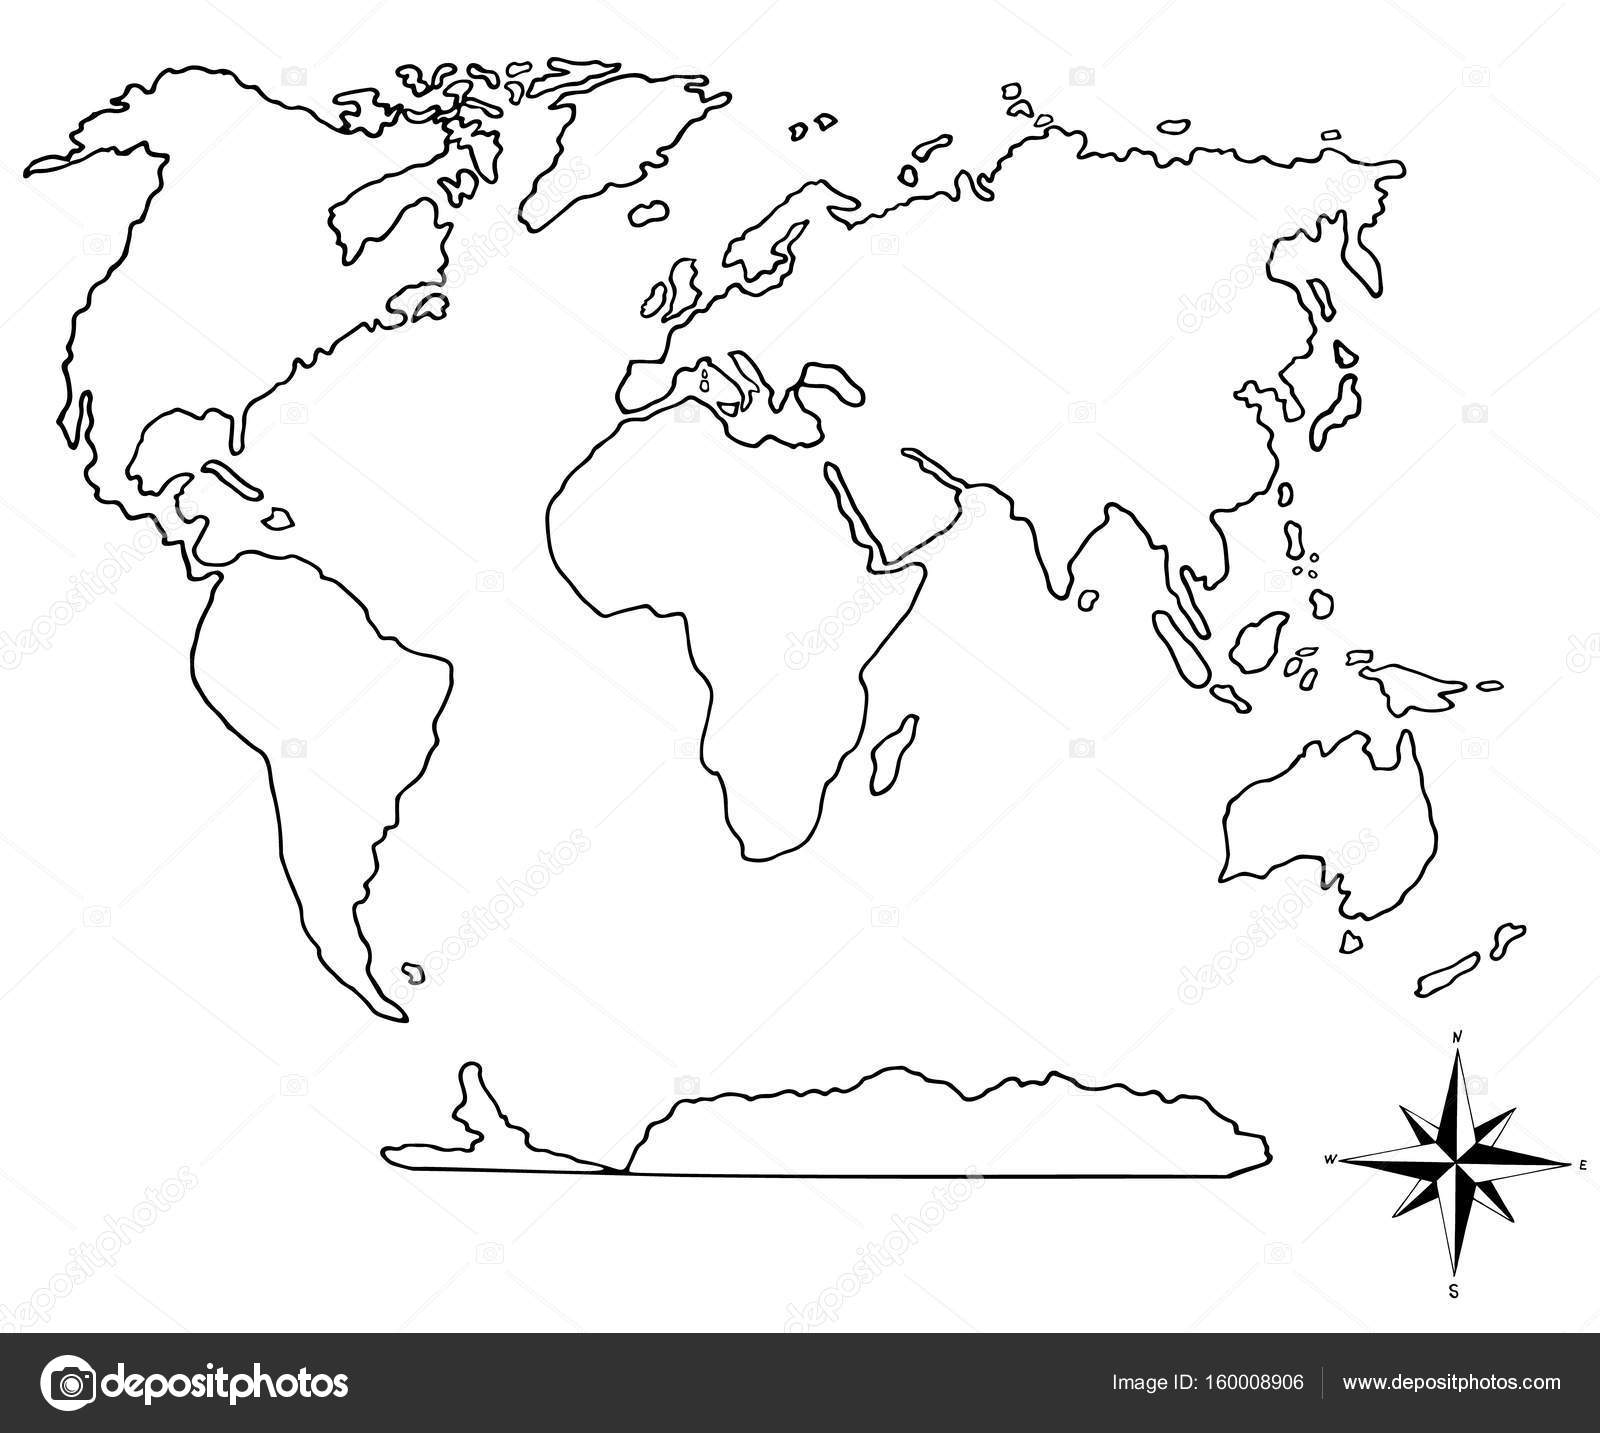 World map and compass hand drawn stock vector olena0107 160008906 world map and compass hand drawn stock vector gumiabroncs Choice Image